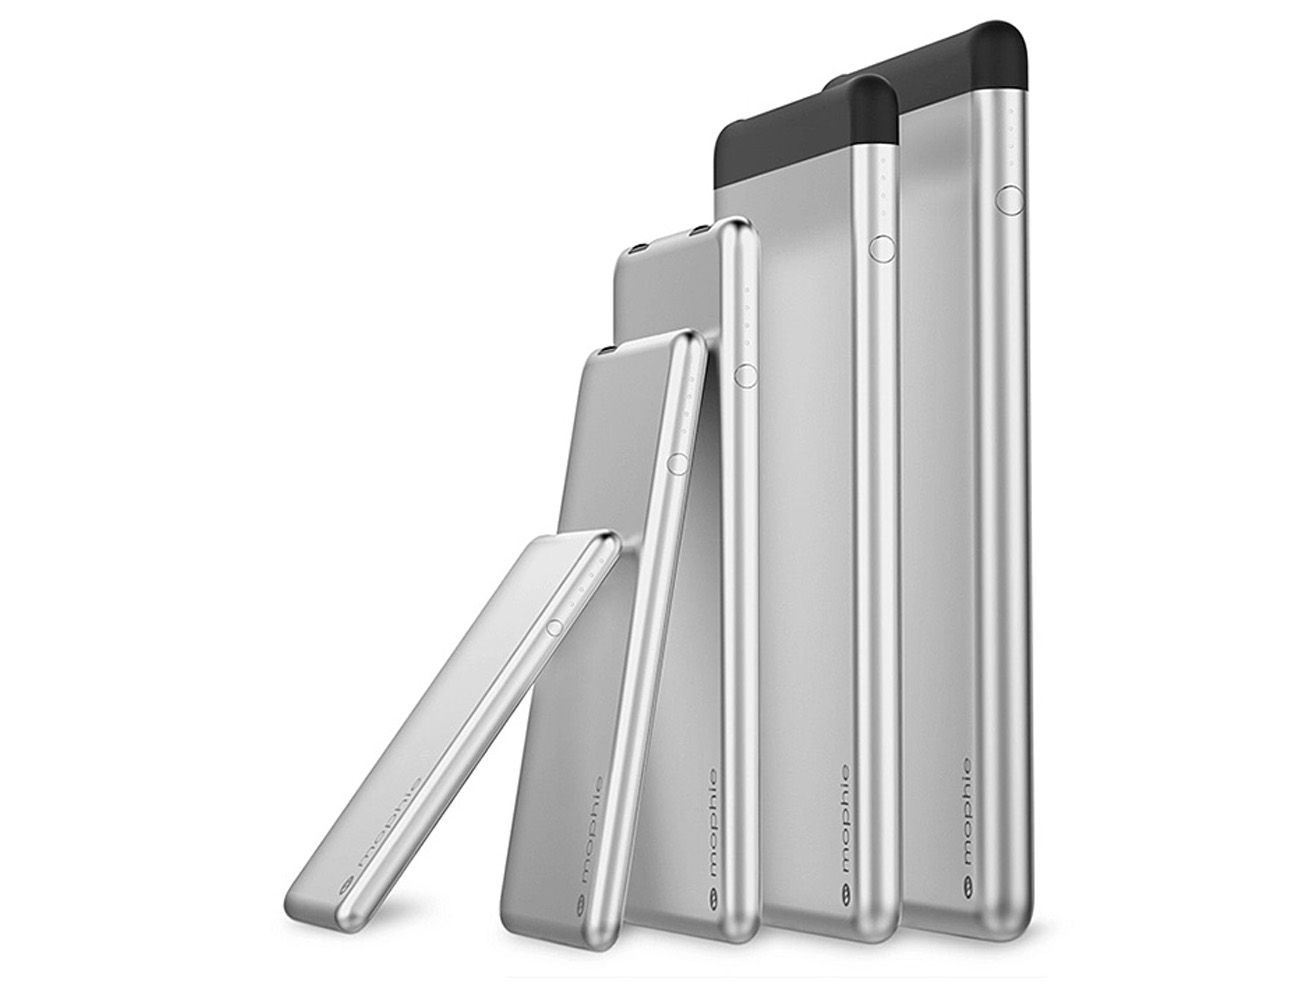 3rd Generation Powerstation Series by mophie